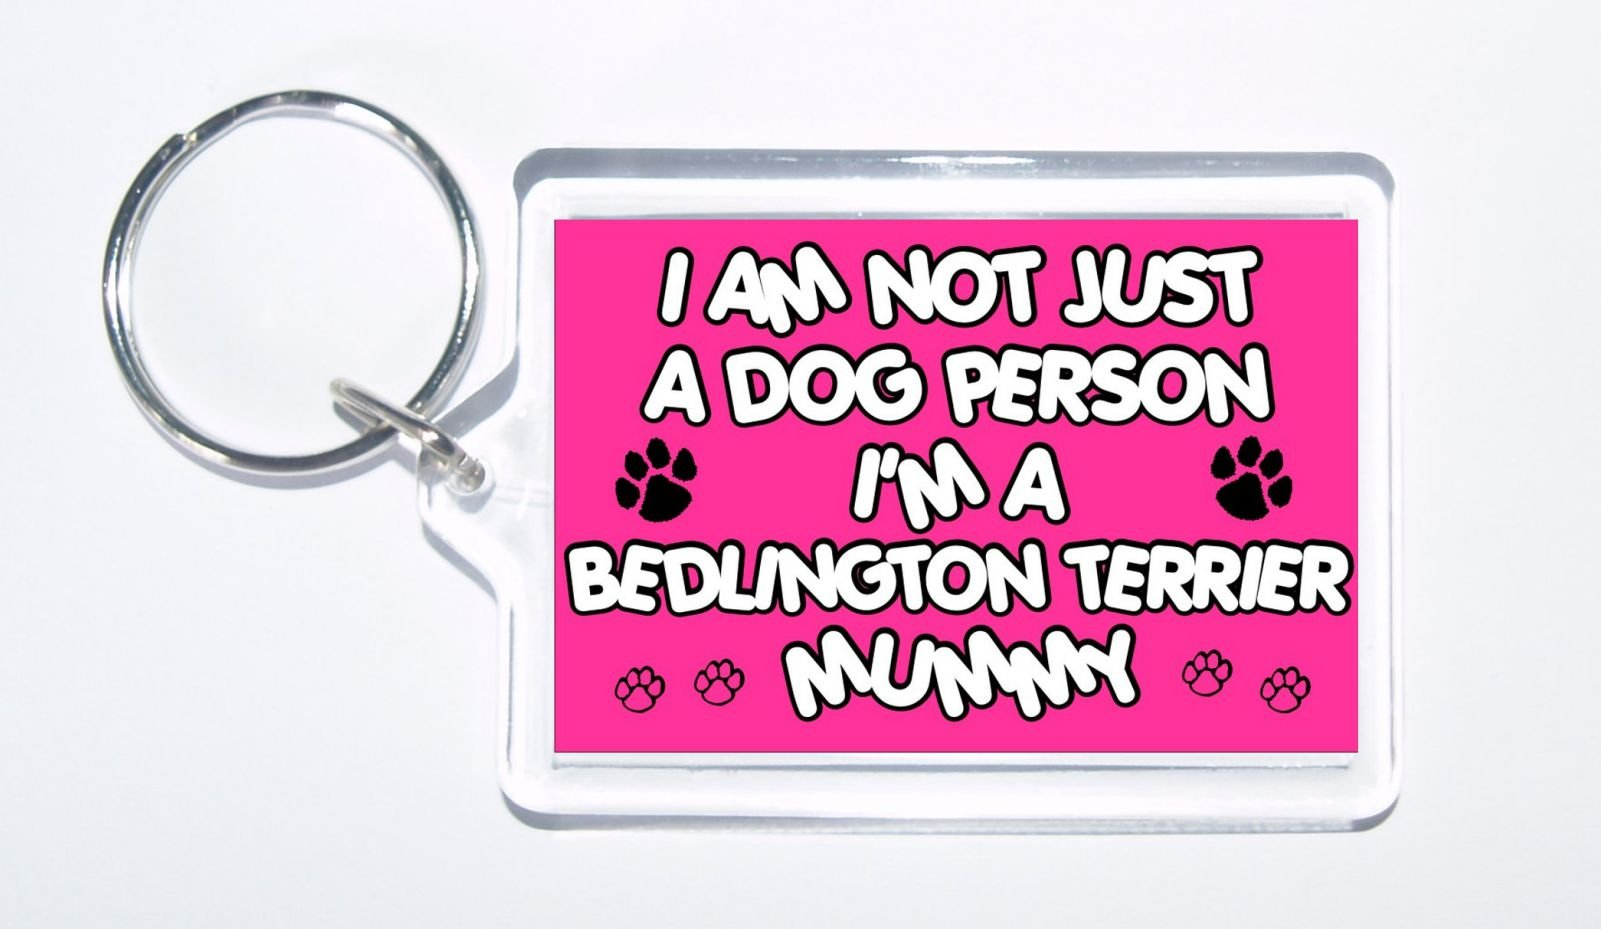 I'm Not A Dog Person I'm A Bedlington Terrier Mummy – Dog Keyring, Ideal Gift/Present